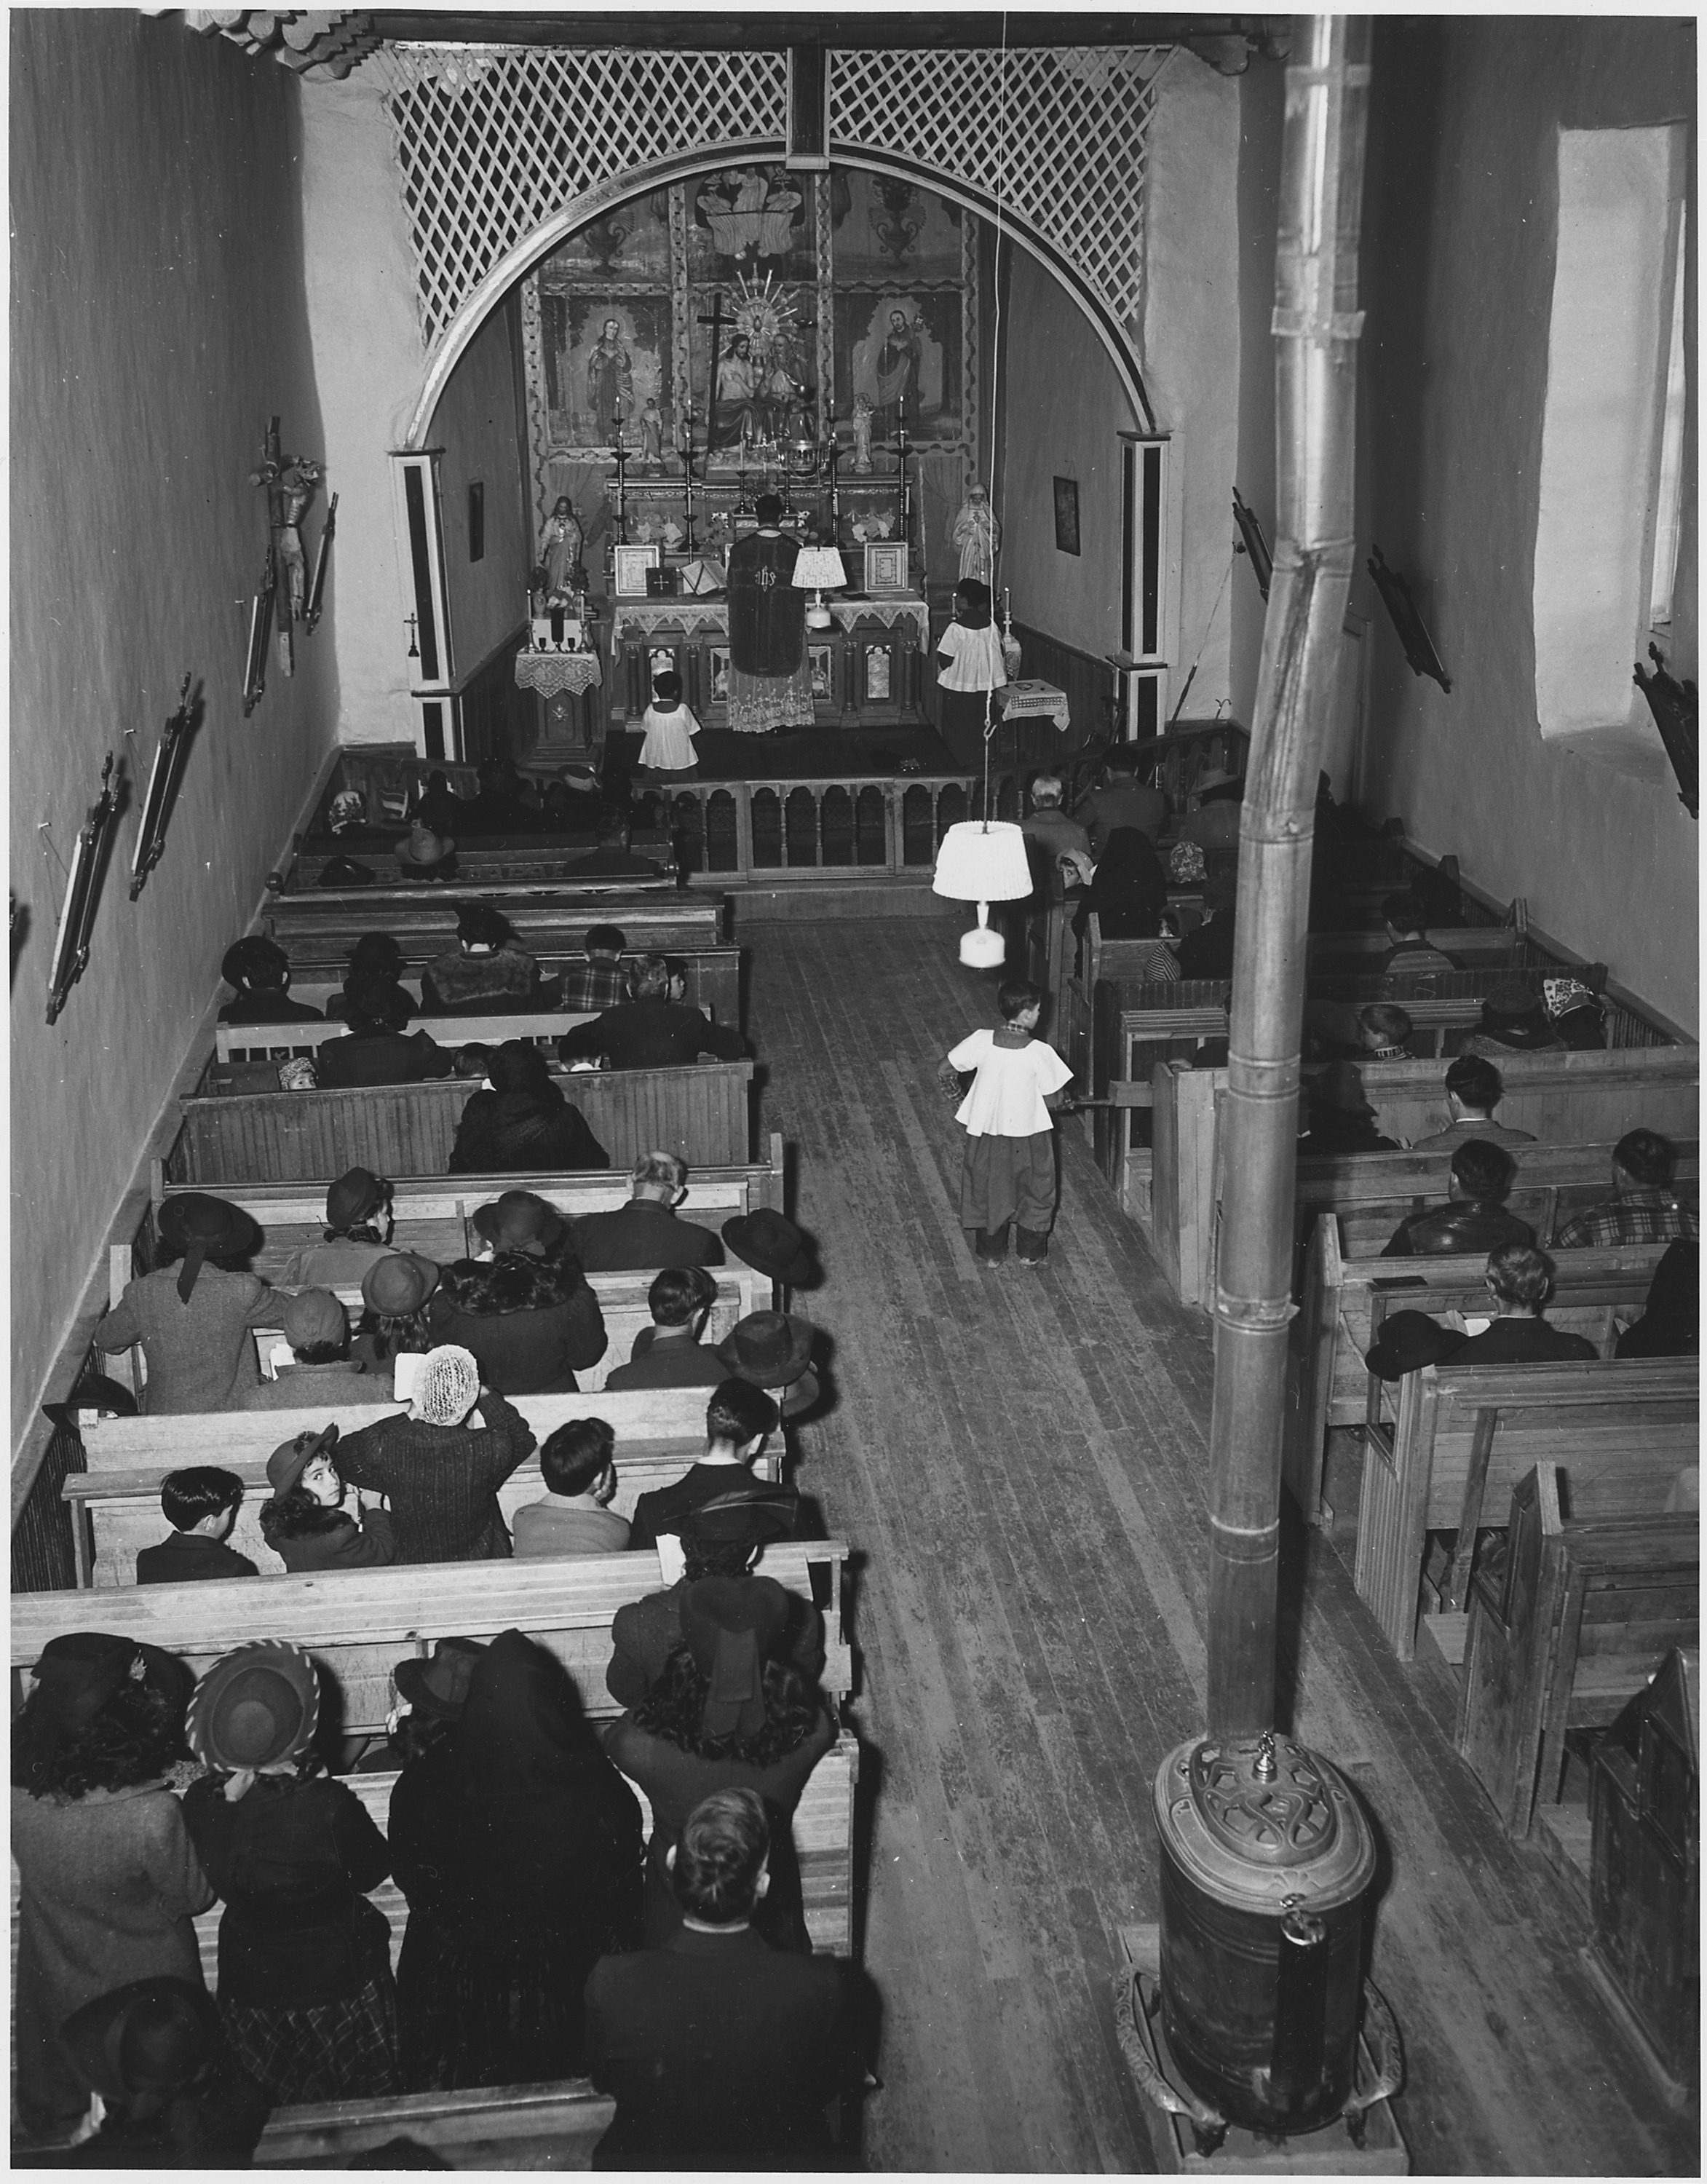 Taos_County,_New_Mexico._Mass_at_Arroyo_Seco_church_-_NARA_-_521926.jpg